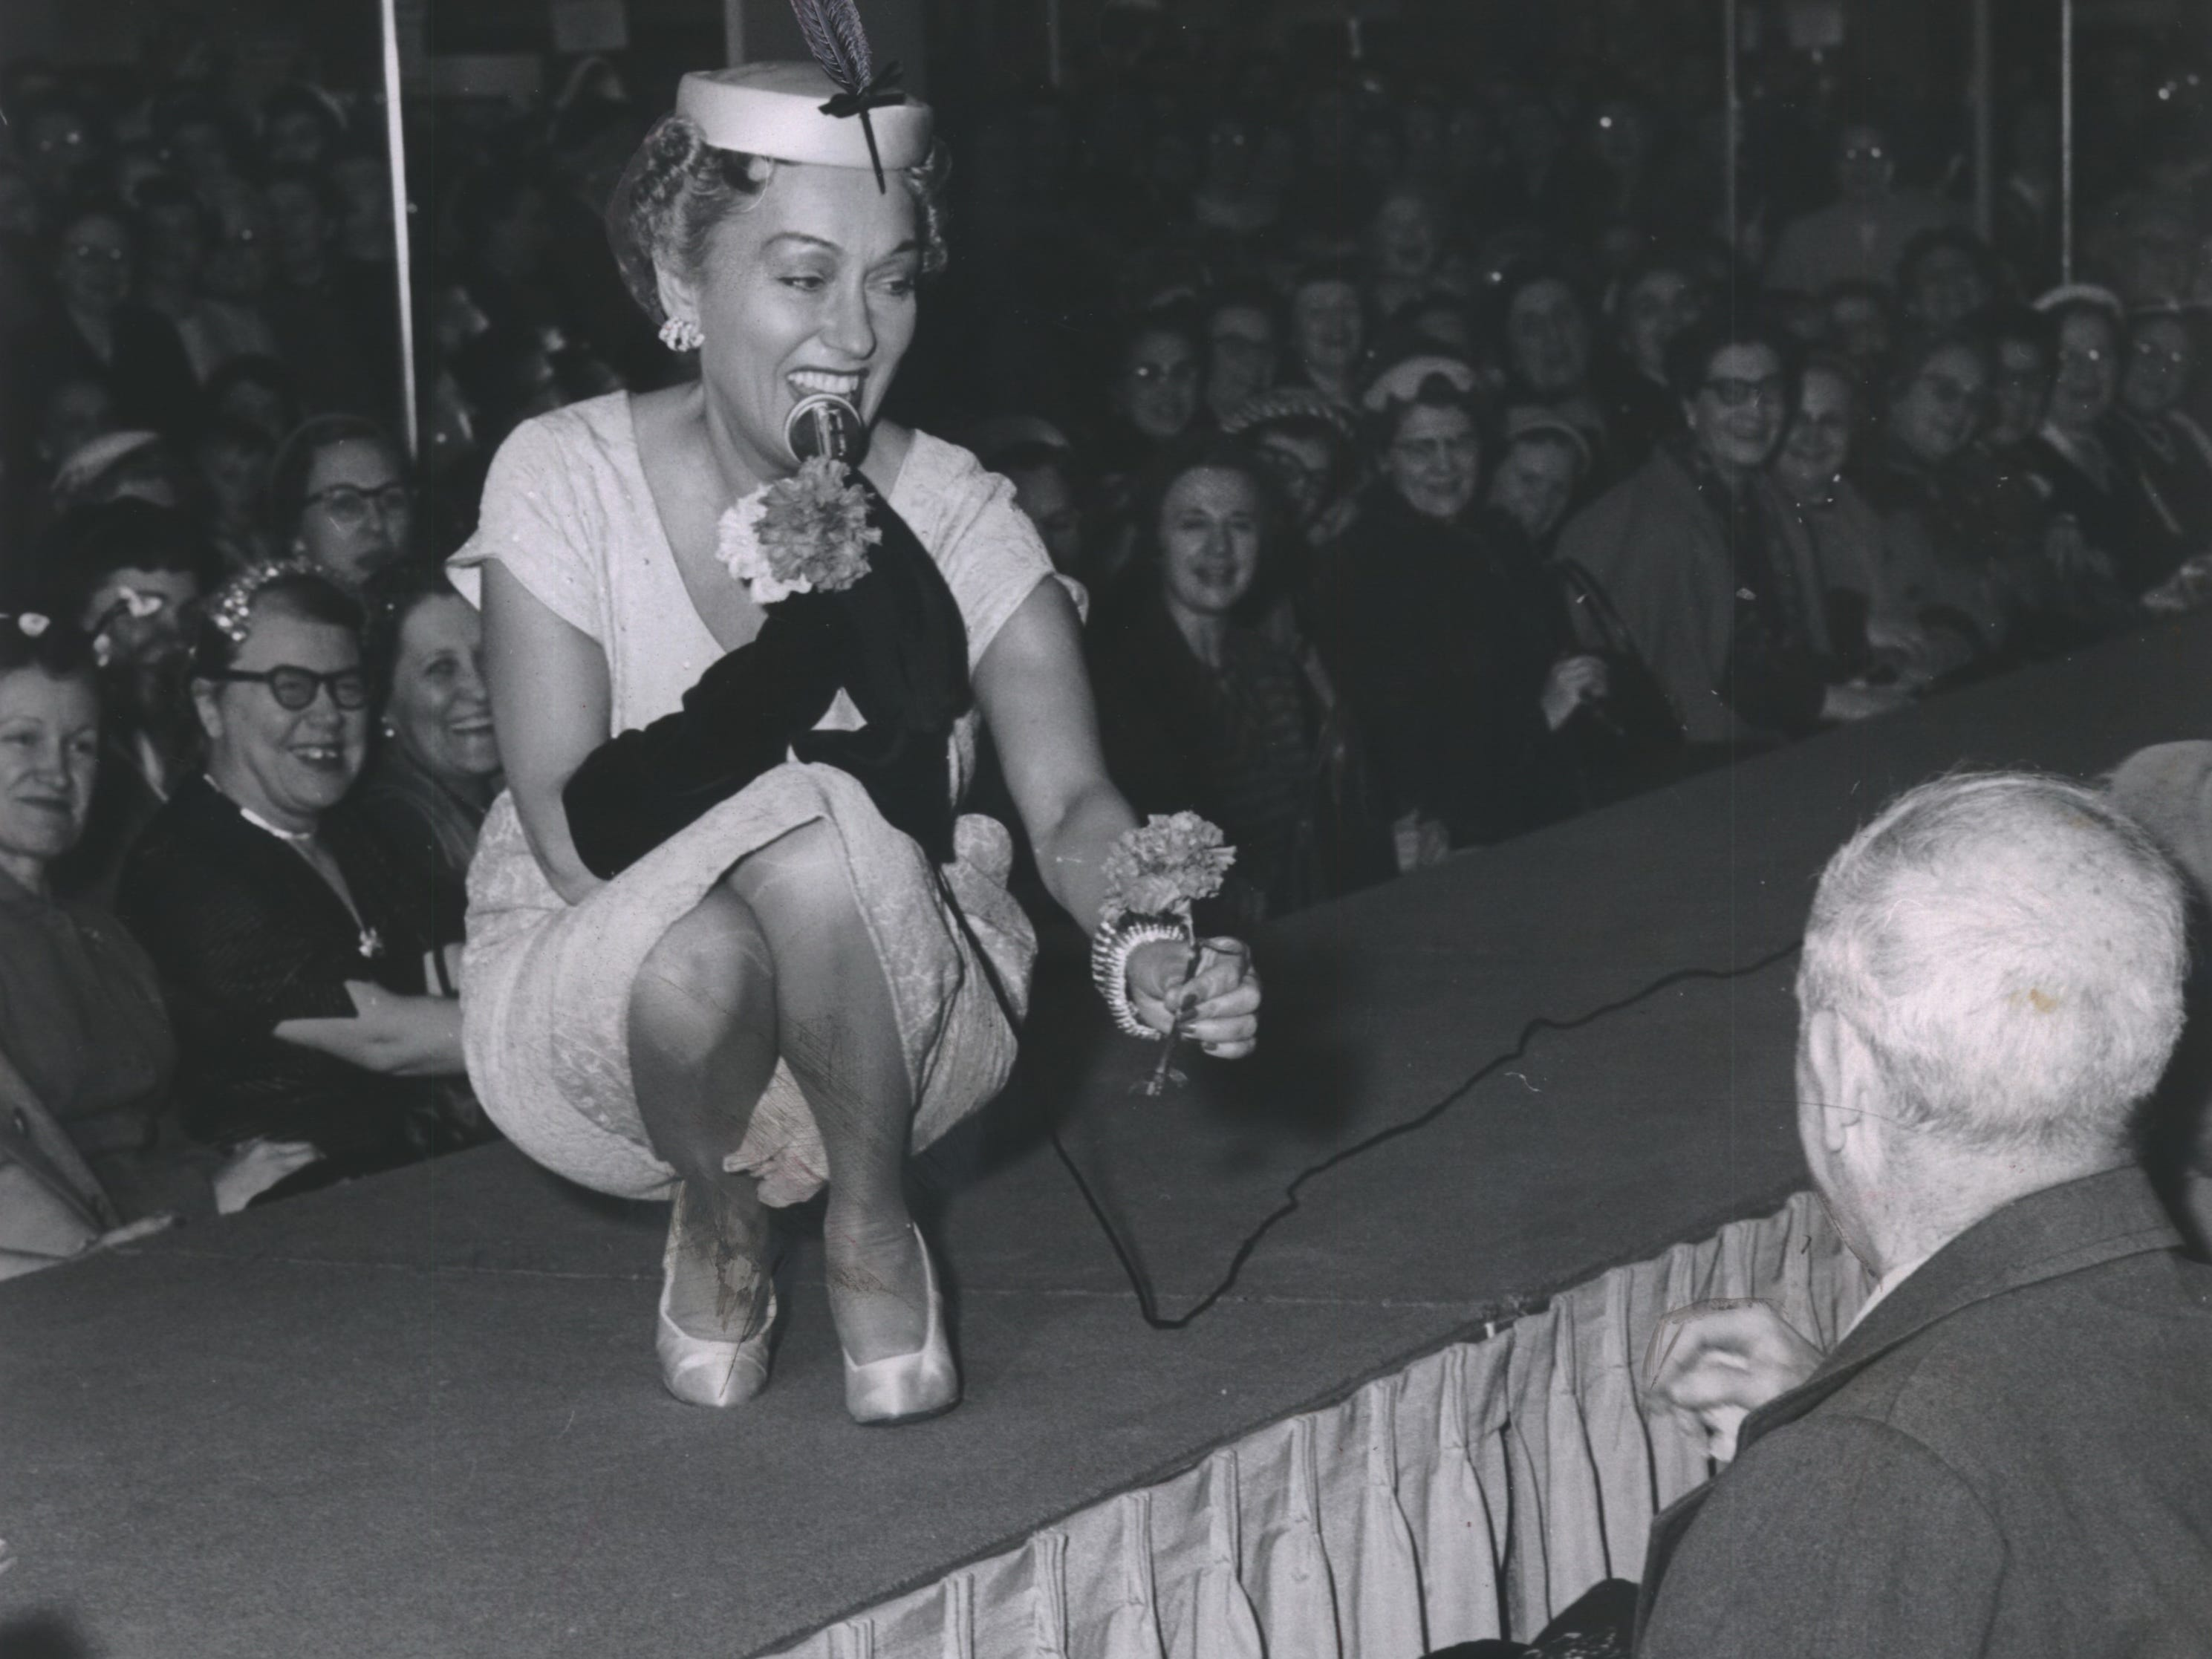 "Actress turned fashion designer Gloria Swanson offers a rose to an admirer during a fashion show at Schuster's department store on N. 3rd St. (now King Drive) at Garfield Ave. on March 16, 1954. Swanson, who three years earlier was nominated for an Oscar for her performance in ""Sunset Boulevard,"" led two style shows at the popular department store that day. This photo was published in the March 17, 1954, Milwaukee Journal."